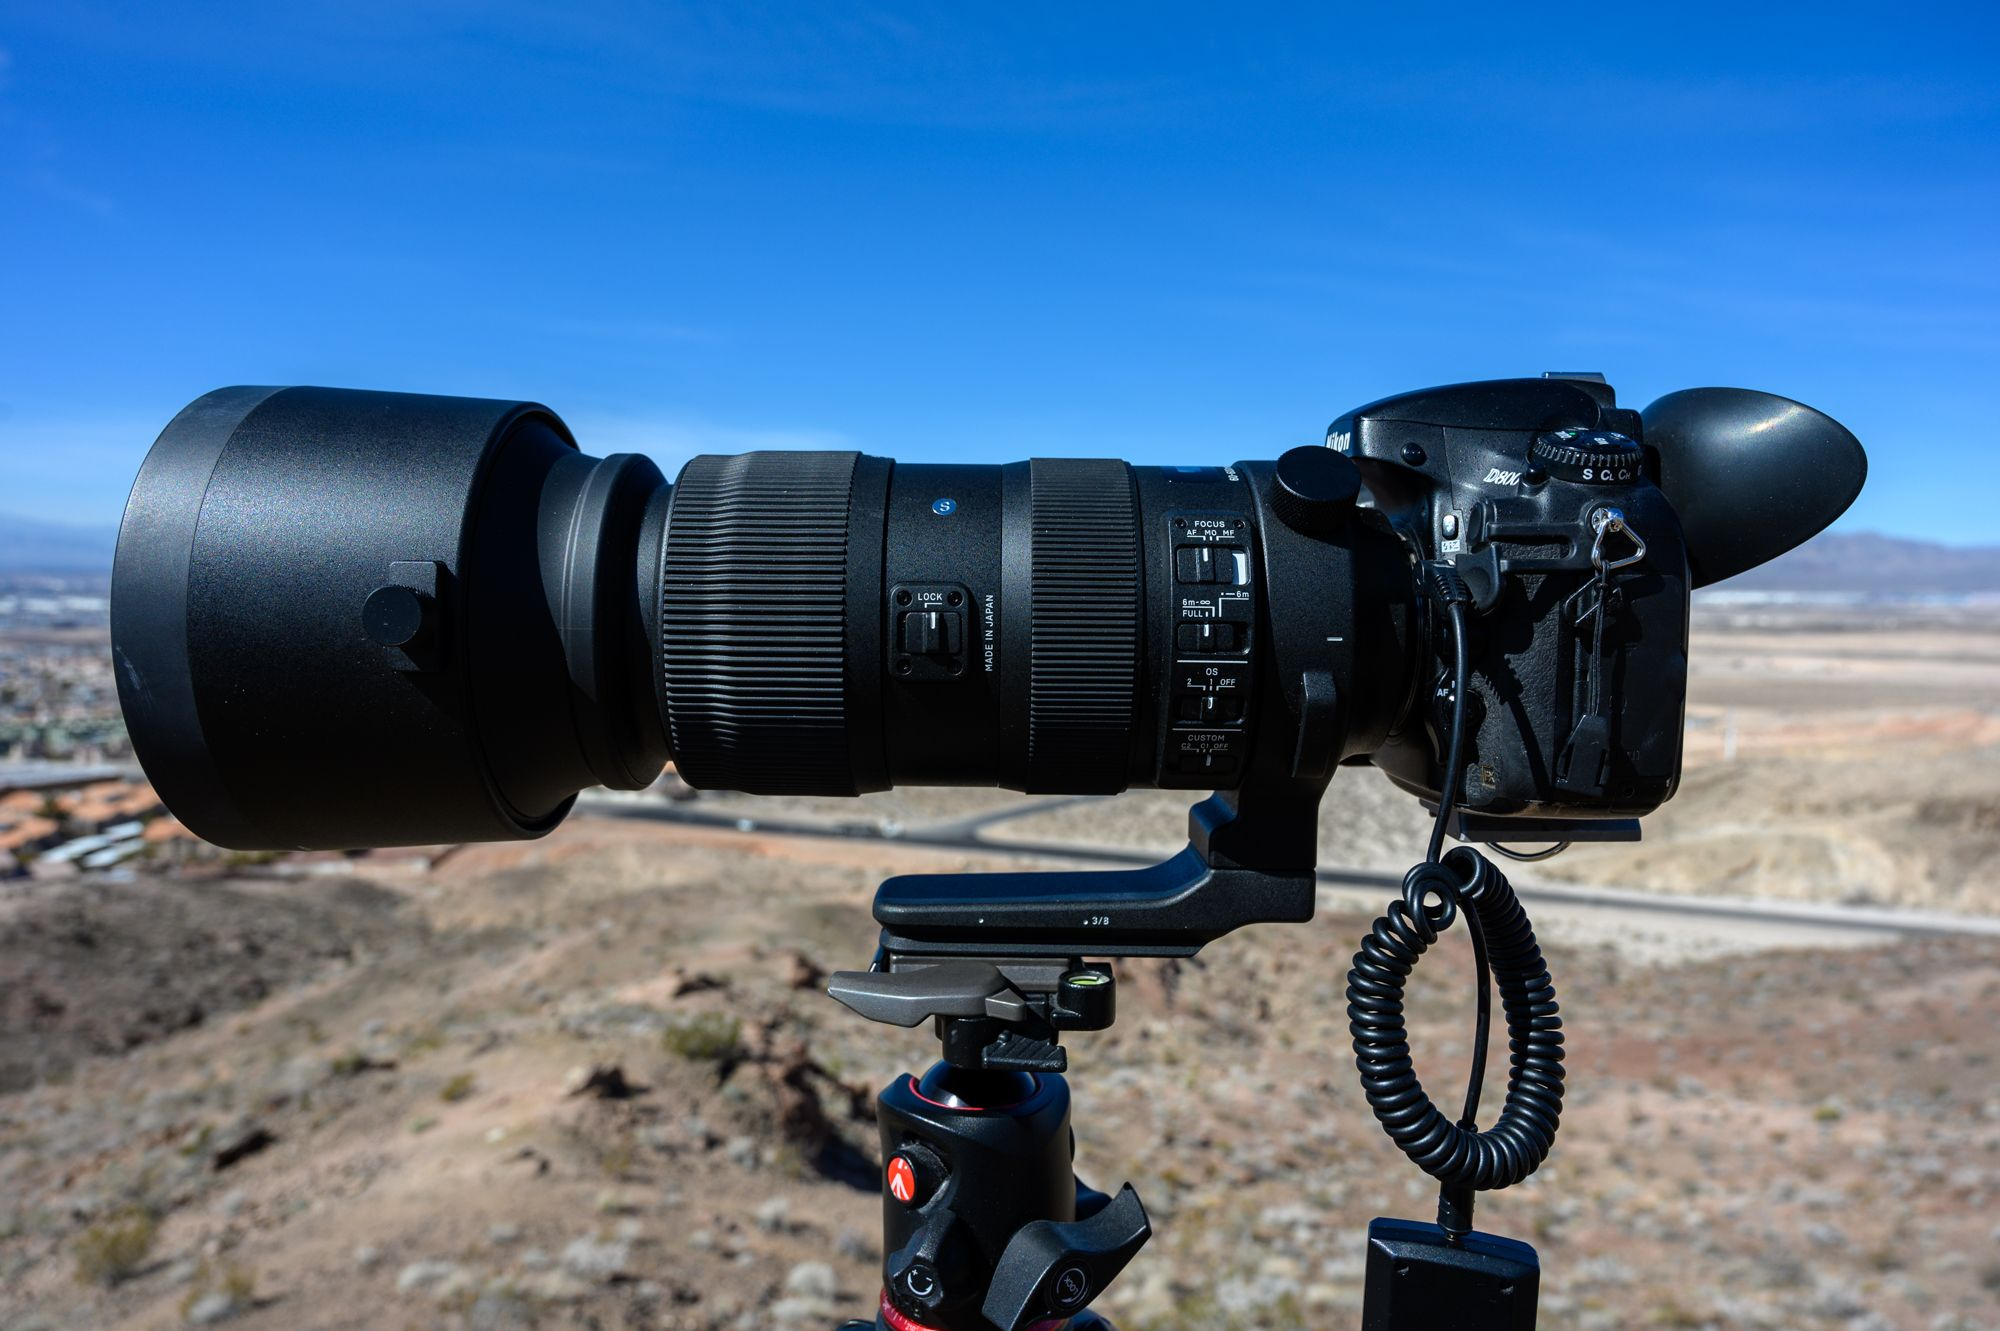 Sigma Issues Product Advisory For Its 60 600mm F4 5 6 3 70 200mm F2 8 Sports Lenses Lenses Sigma Lenses Usb Dock